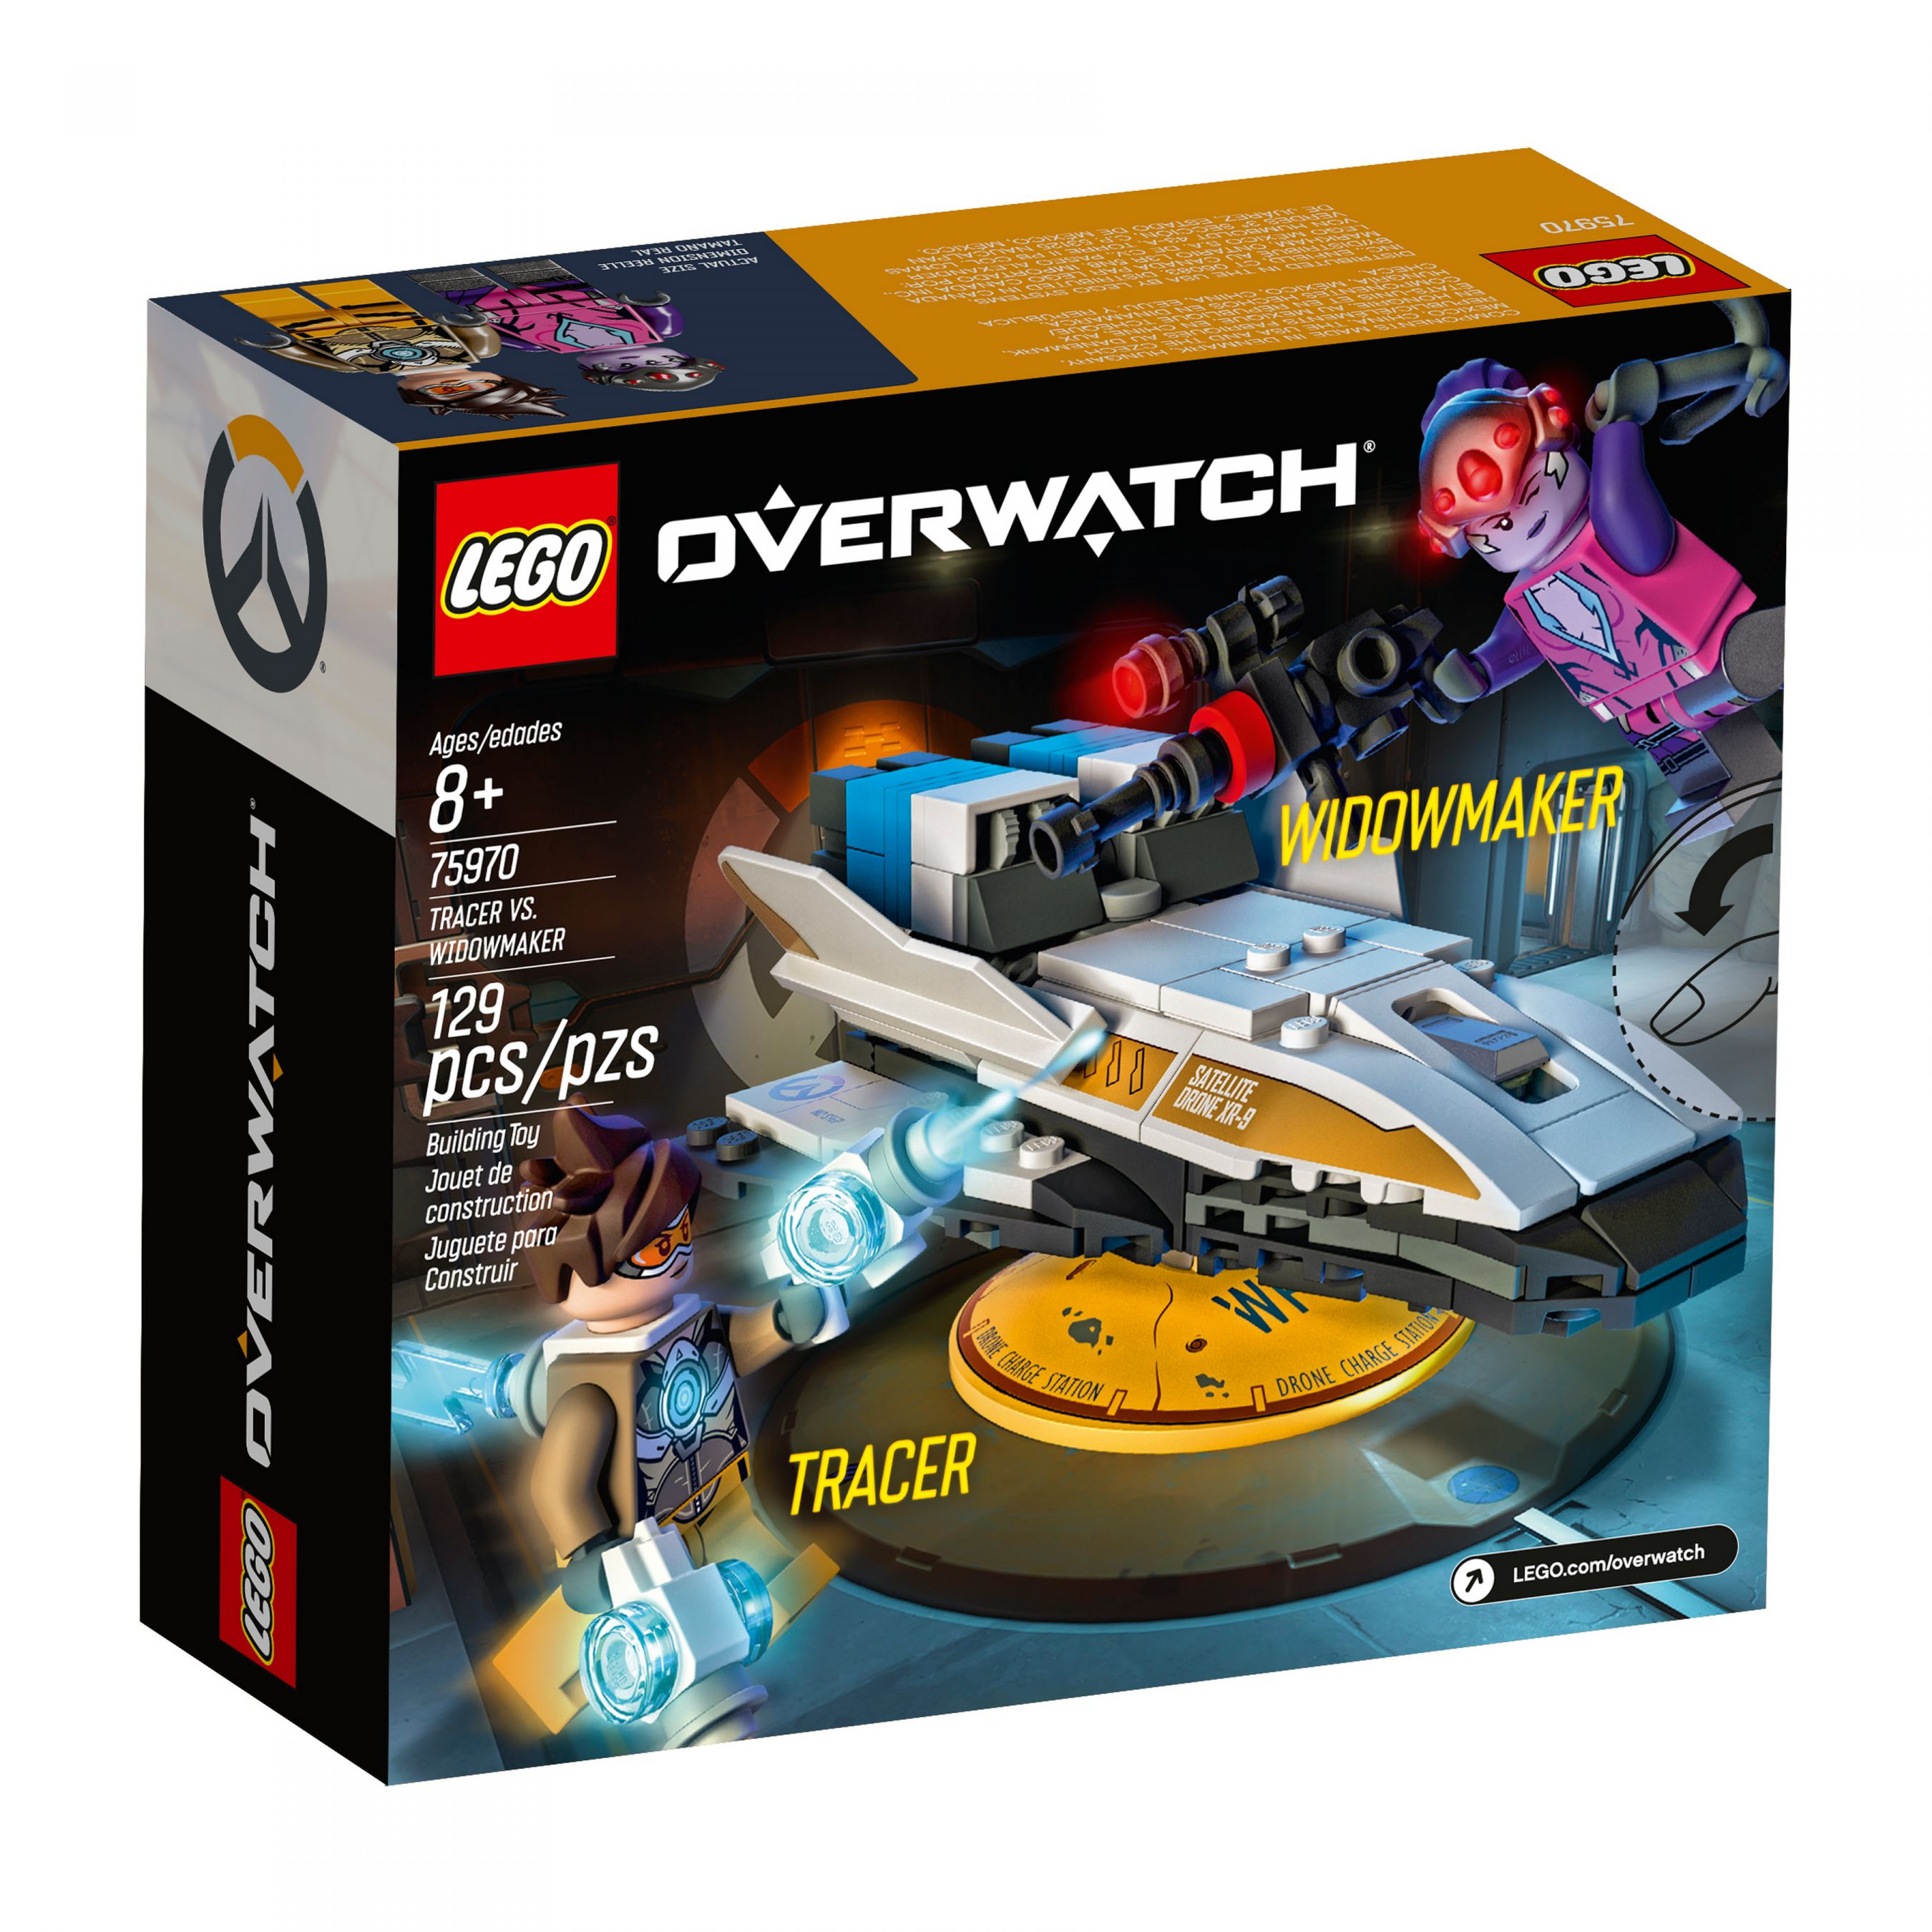 LEGO Overwatch 75970 Tracer vs. Widowmaker LEGO_75970_alt4.jpg